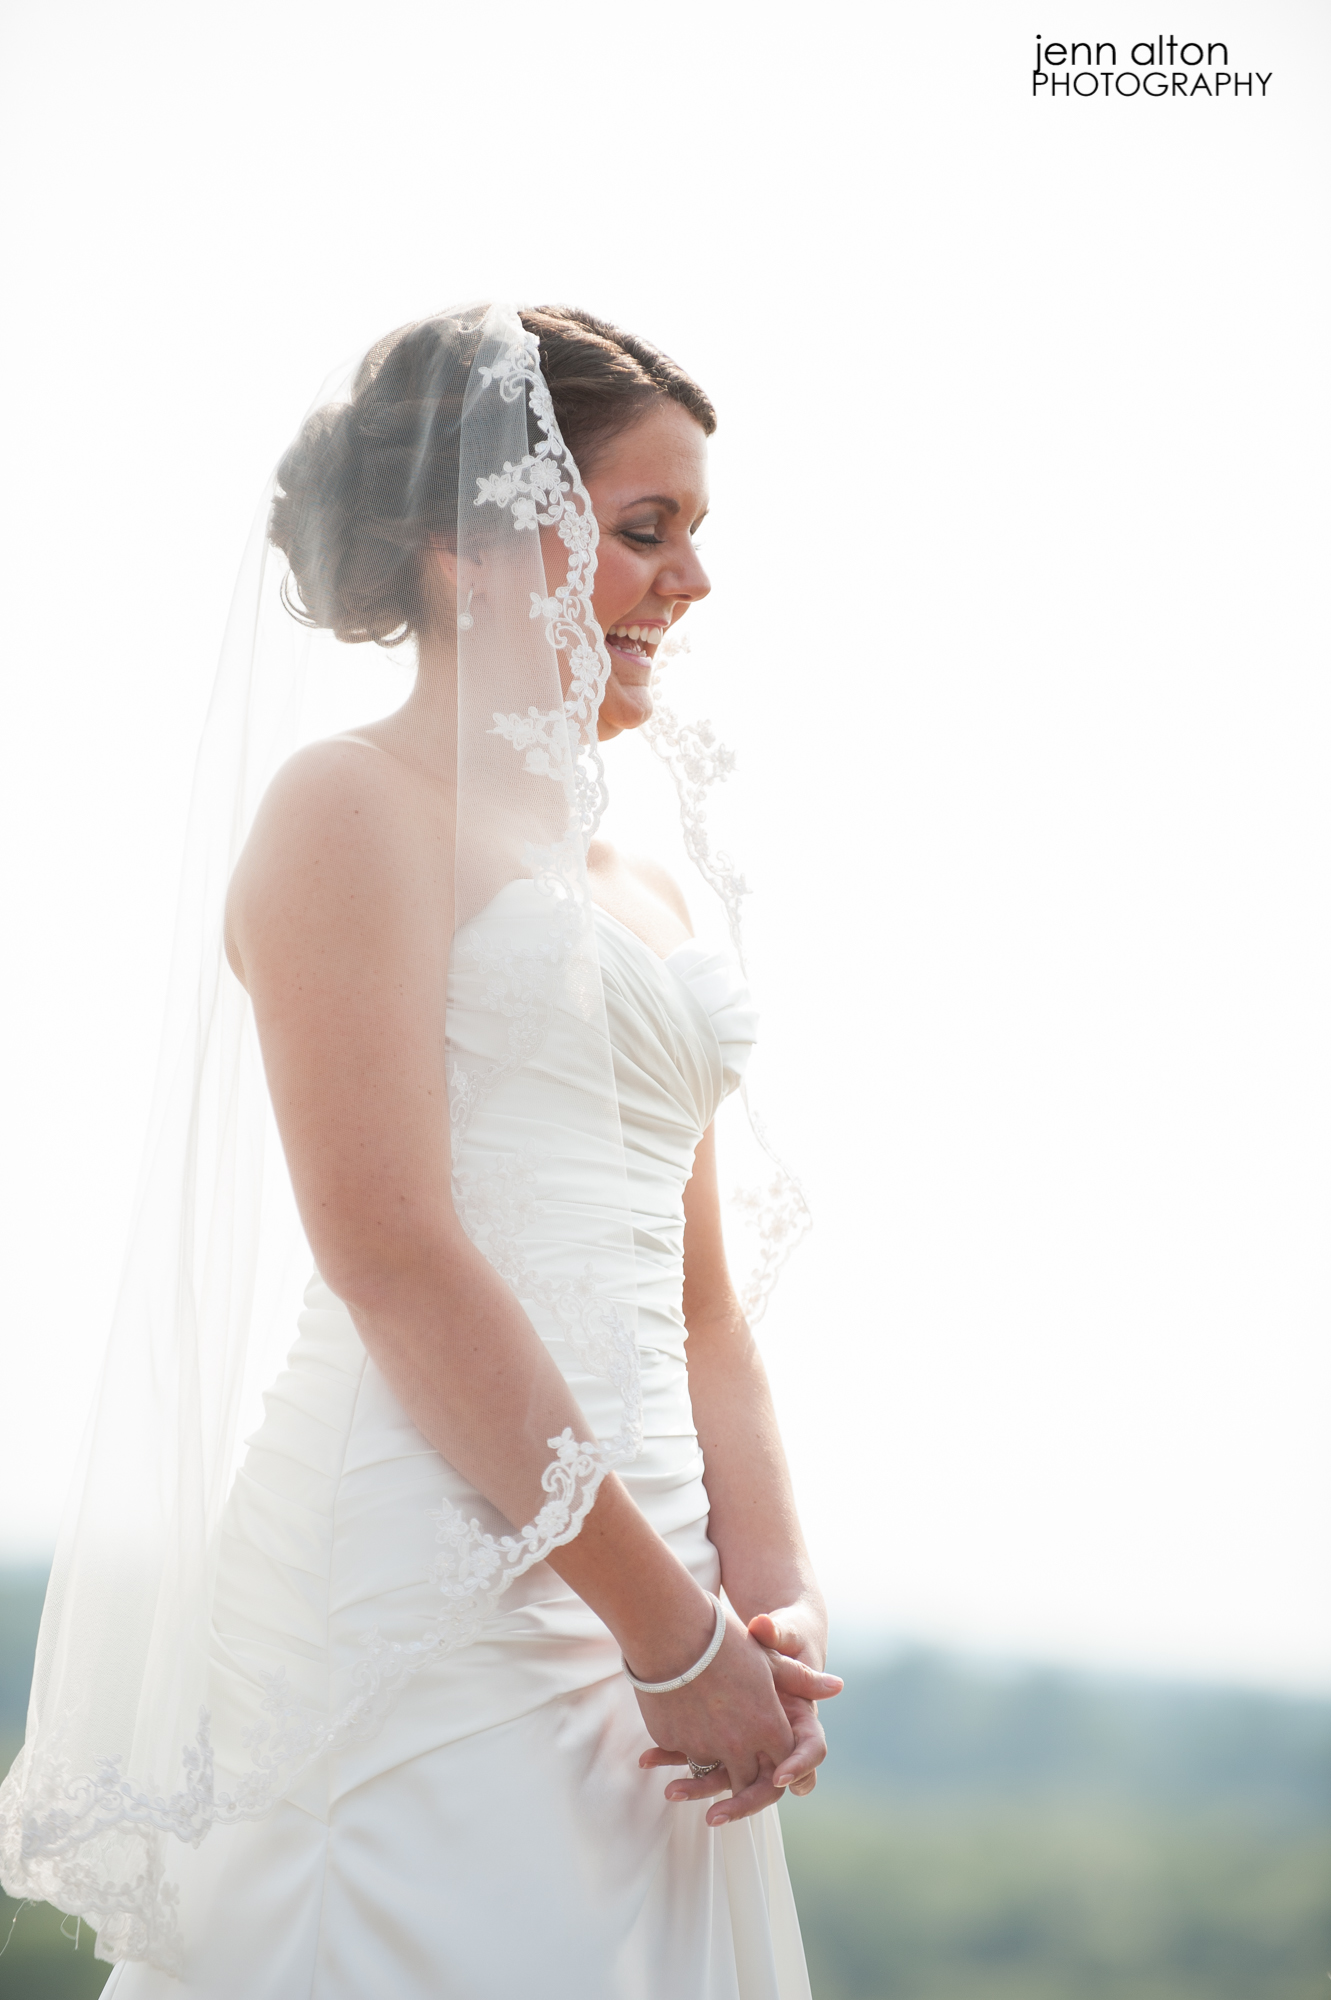 Bride during vows, Wedding, Merrimack Valley